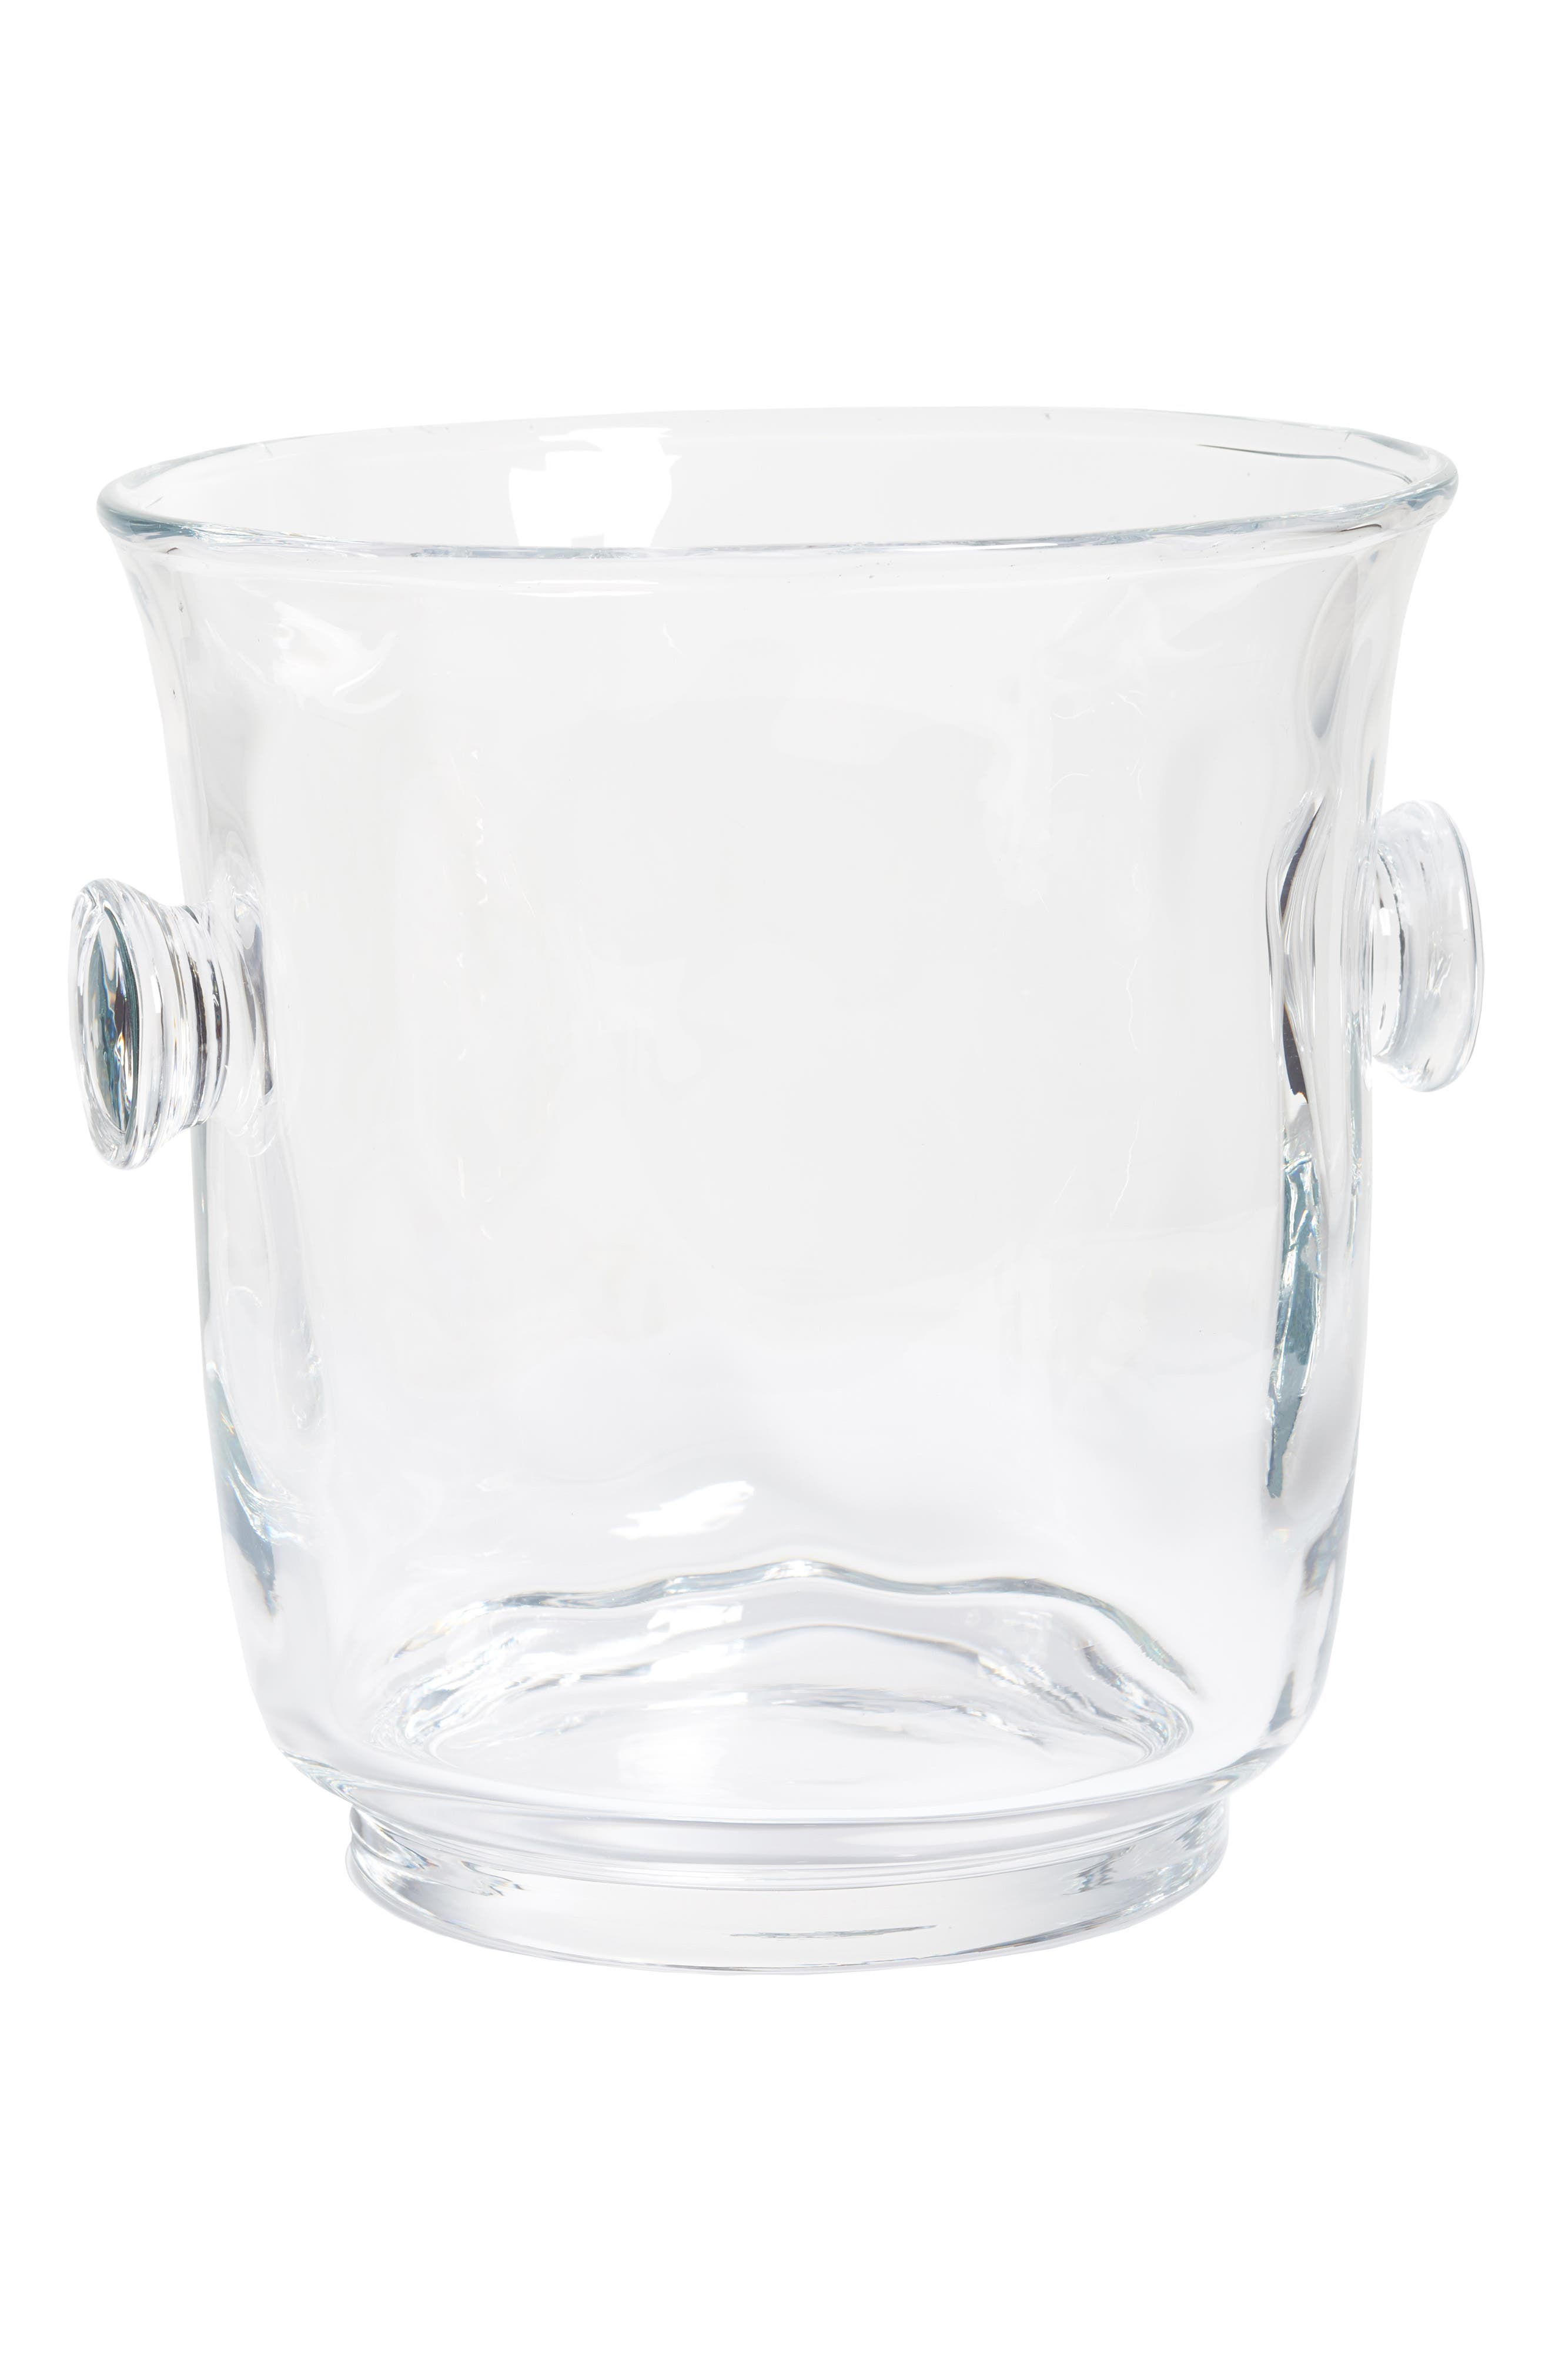 Carine Champagne Bucket,                             Main thumbnail 1, color,                             CLEAR